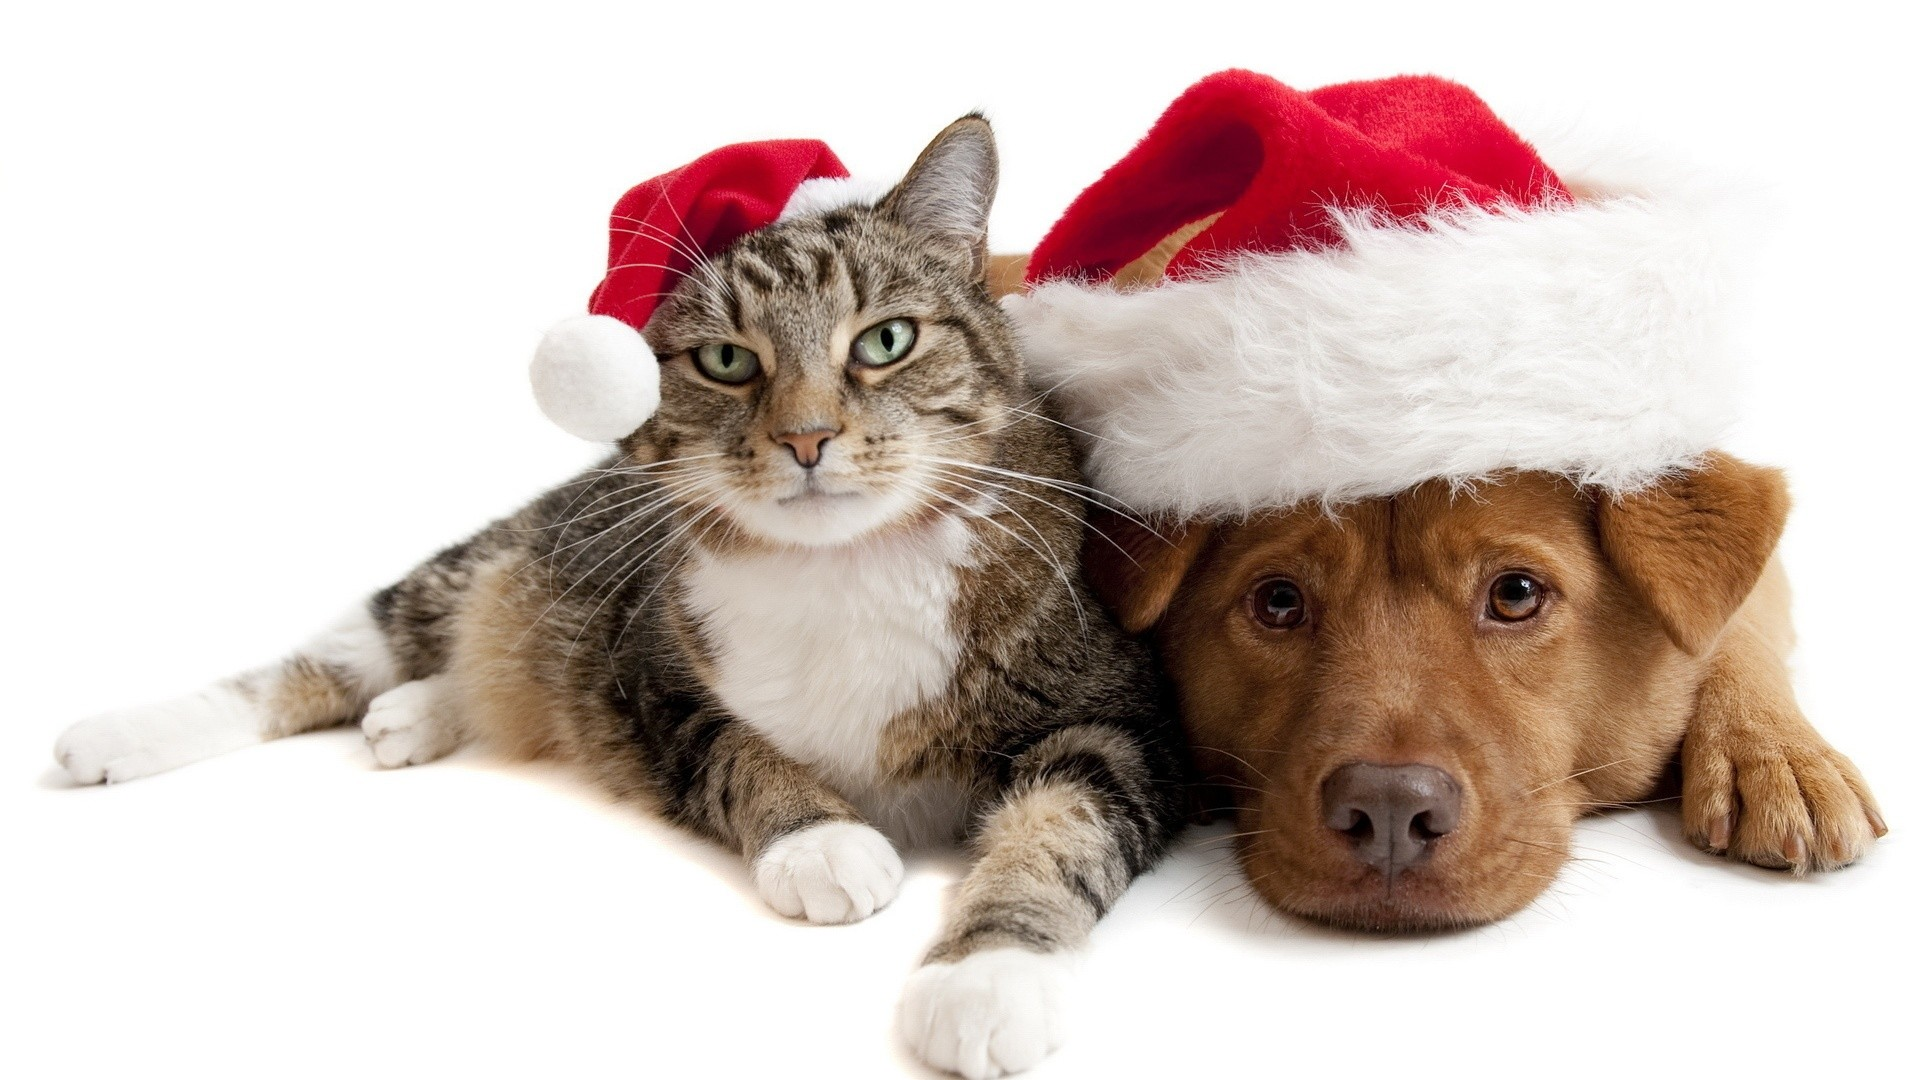 Cute cat and dog hd wallpaper high quality.